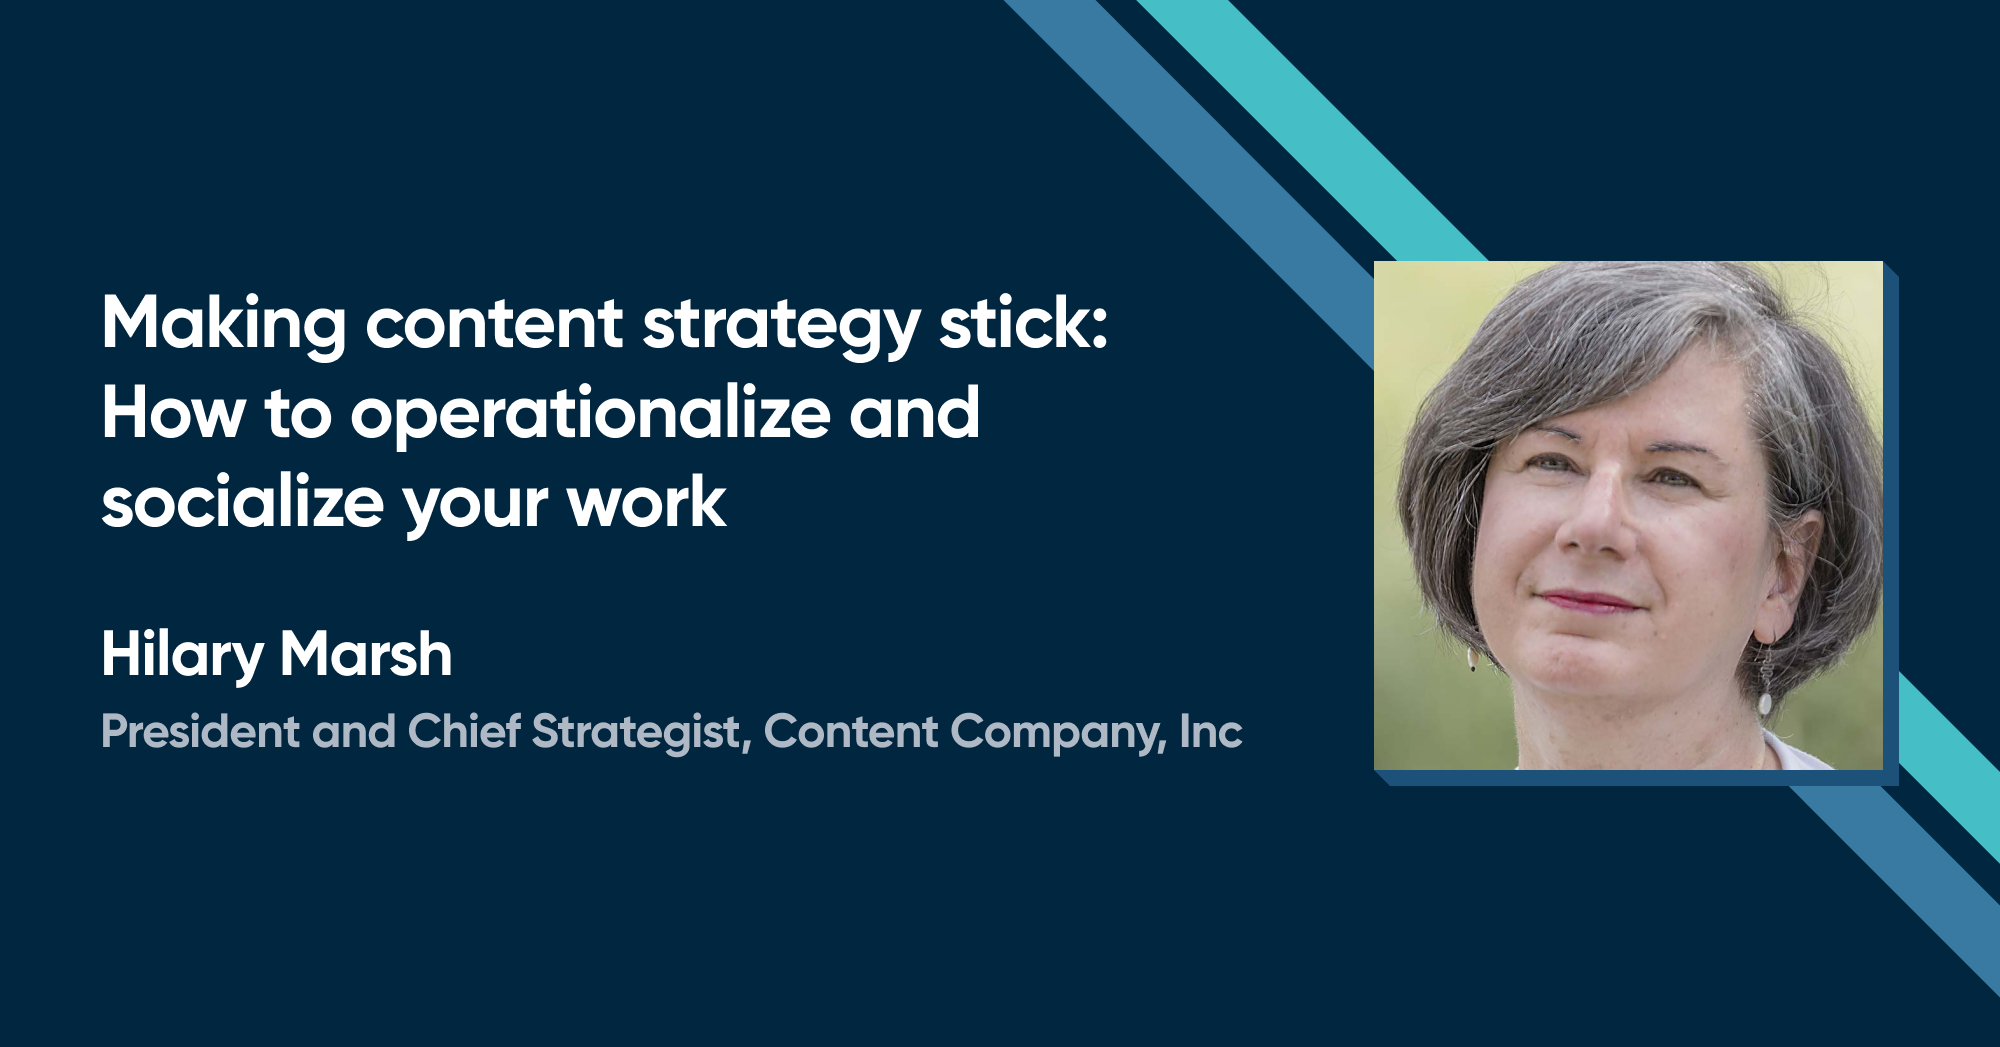 Hilary Marsh - Making content strategy stick: How to operationalize and socialize your work